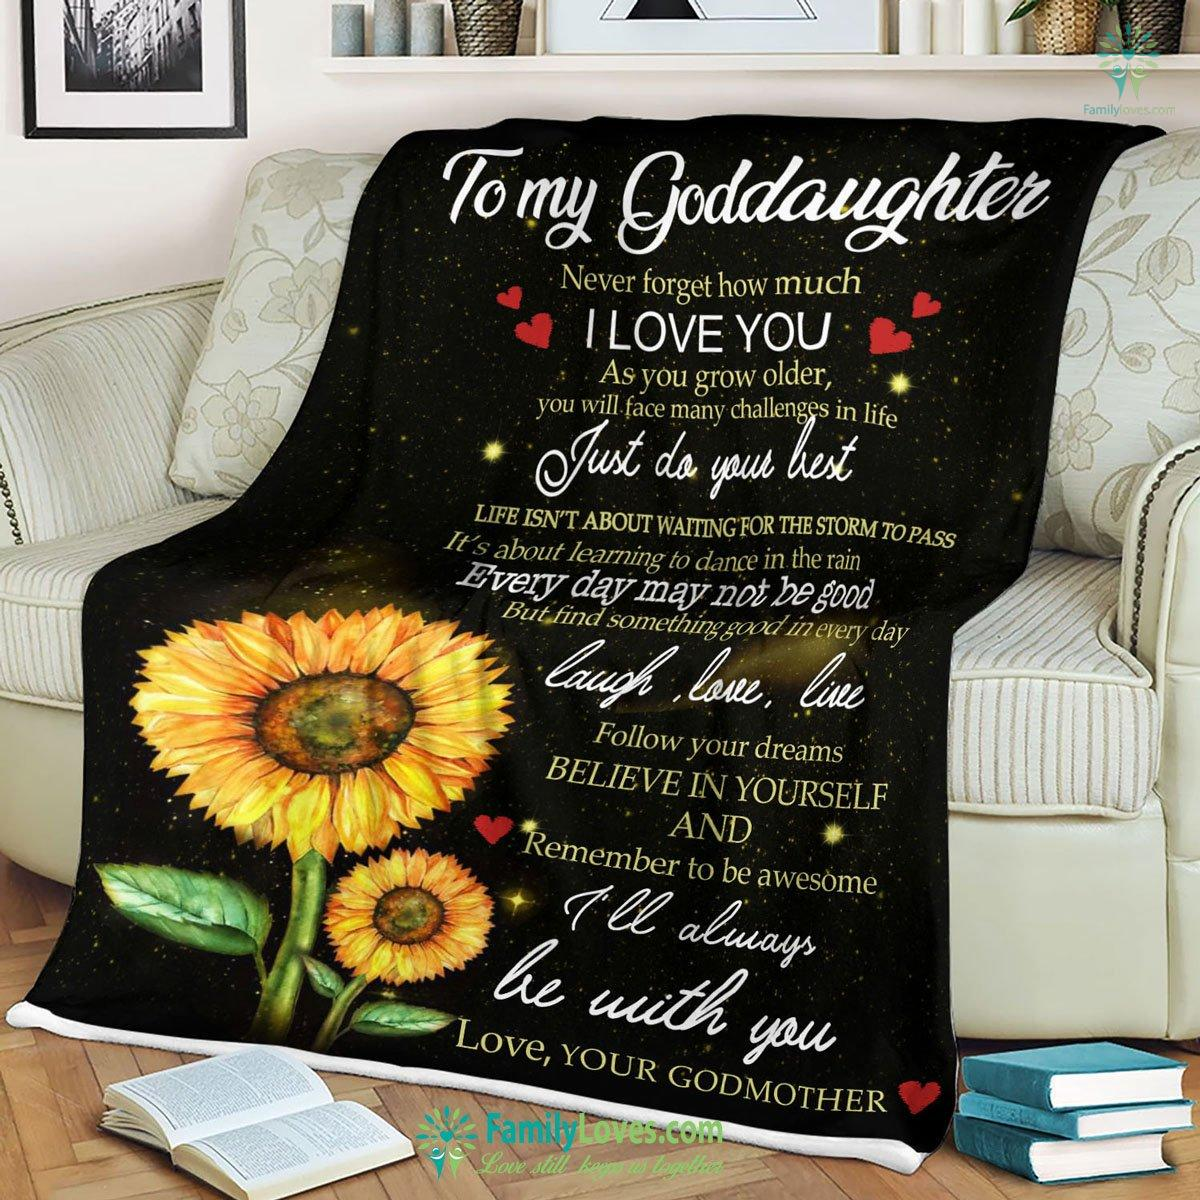 Pp Goddaughter Ill Always Be With You Blanket 19 Familyloves.com